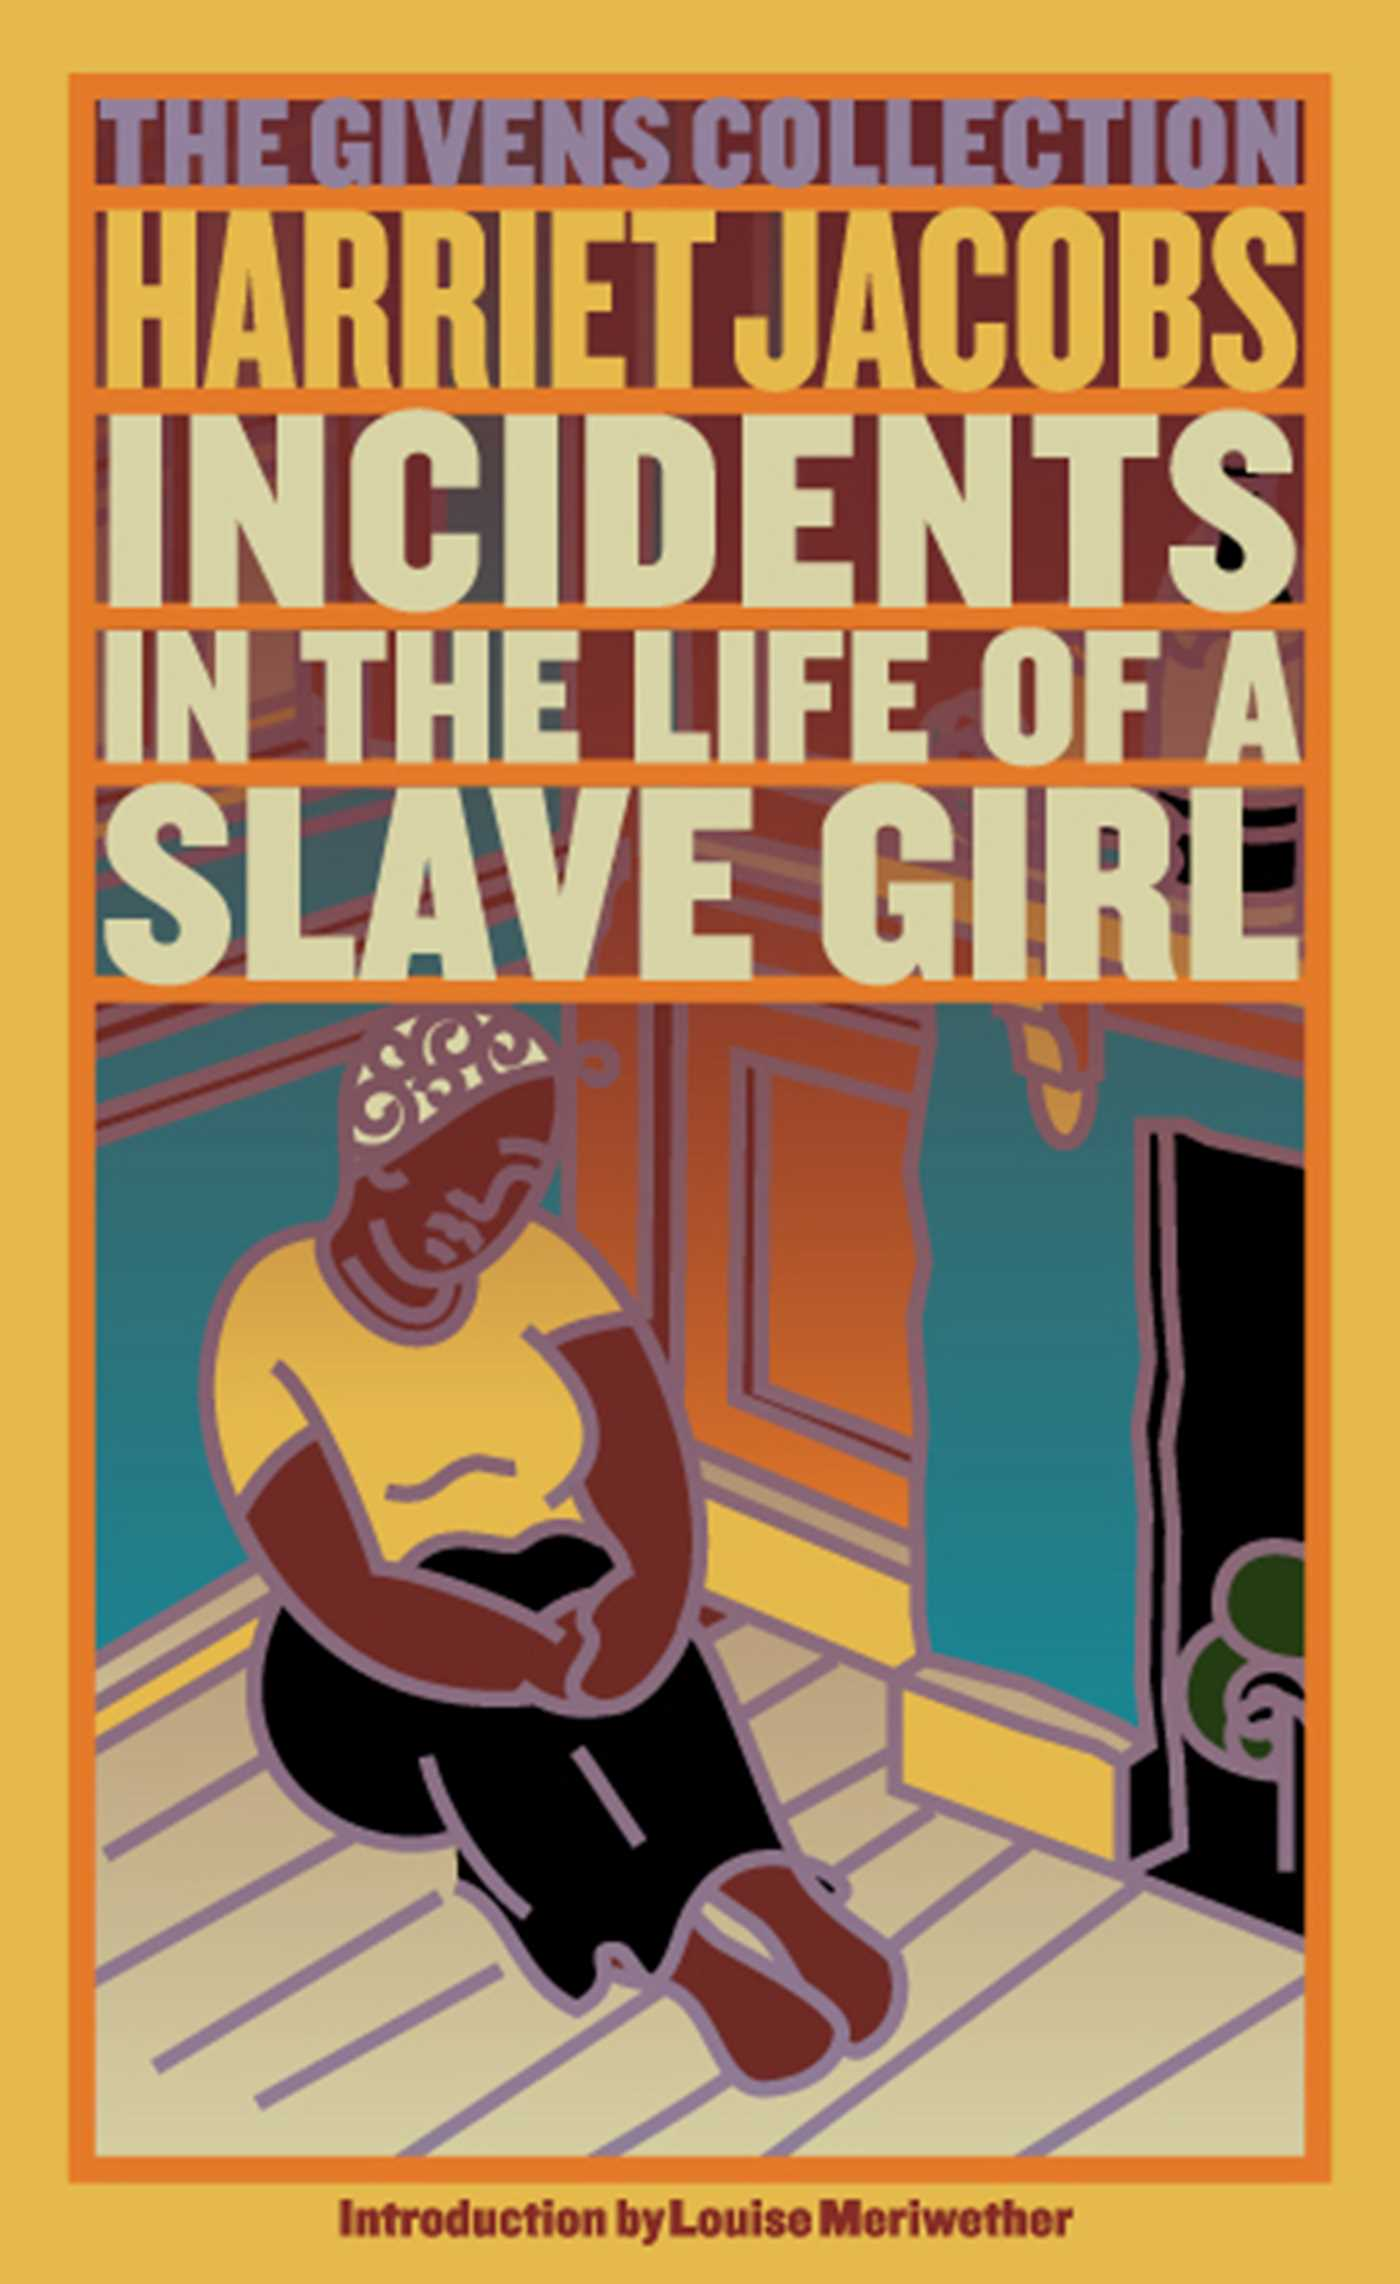 an analysis of slavery in incidents in the life of a slave girl by harriet jacobs Incidents in the life of a slave girl to the signet classics edition of harriet jacobs's incidents in the life of a slave part of life for slaves.